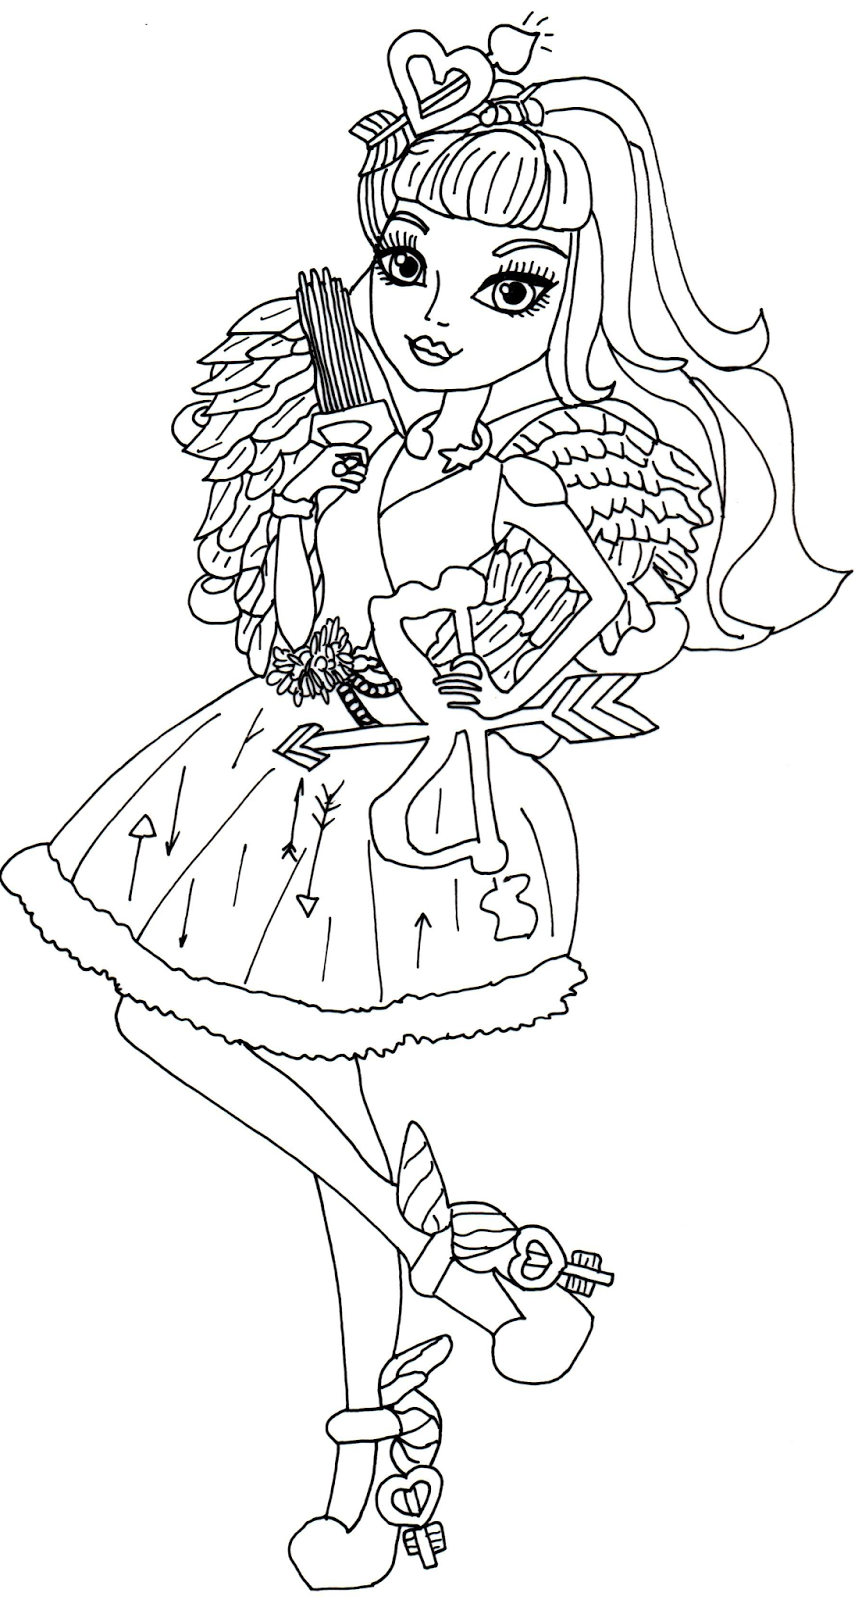 Free Printable Ever After High Coloring Pages: January 2014